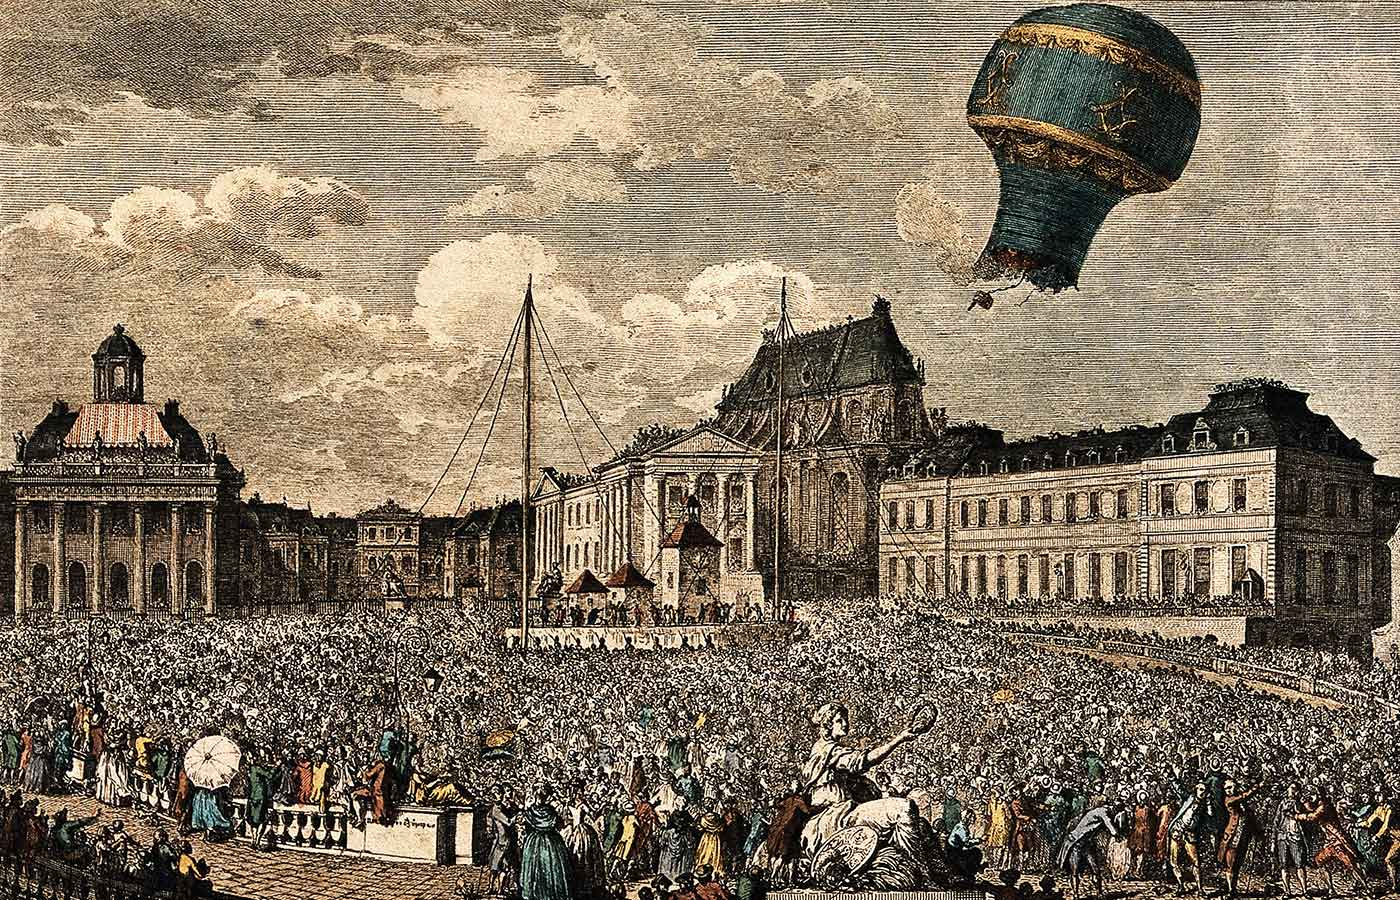 A crowd watches from the streets as a hot-air balloon takes off